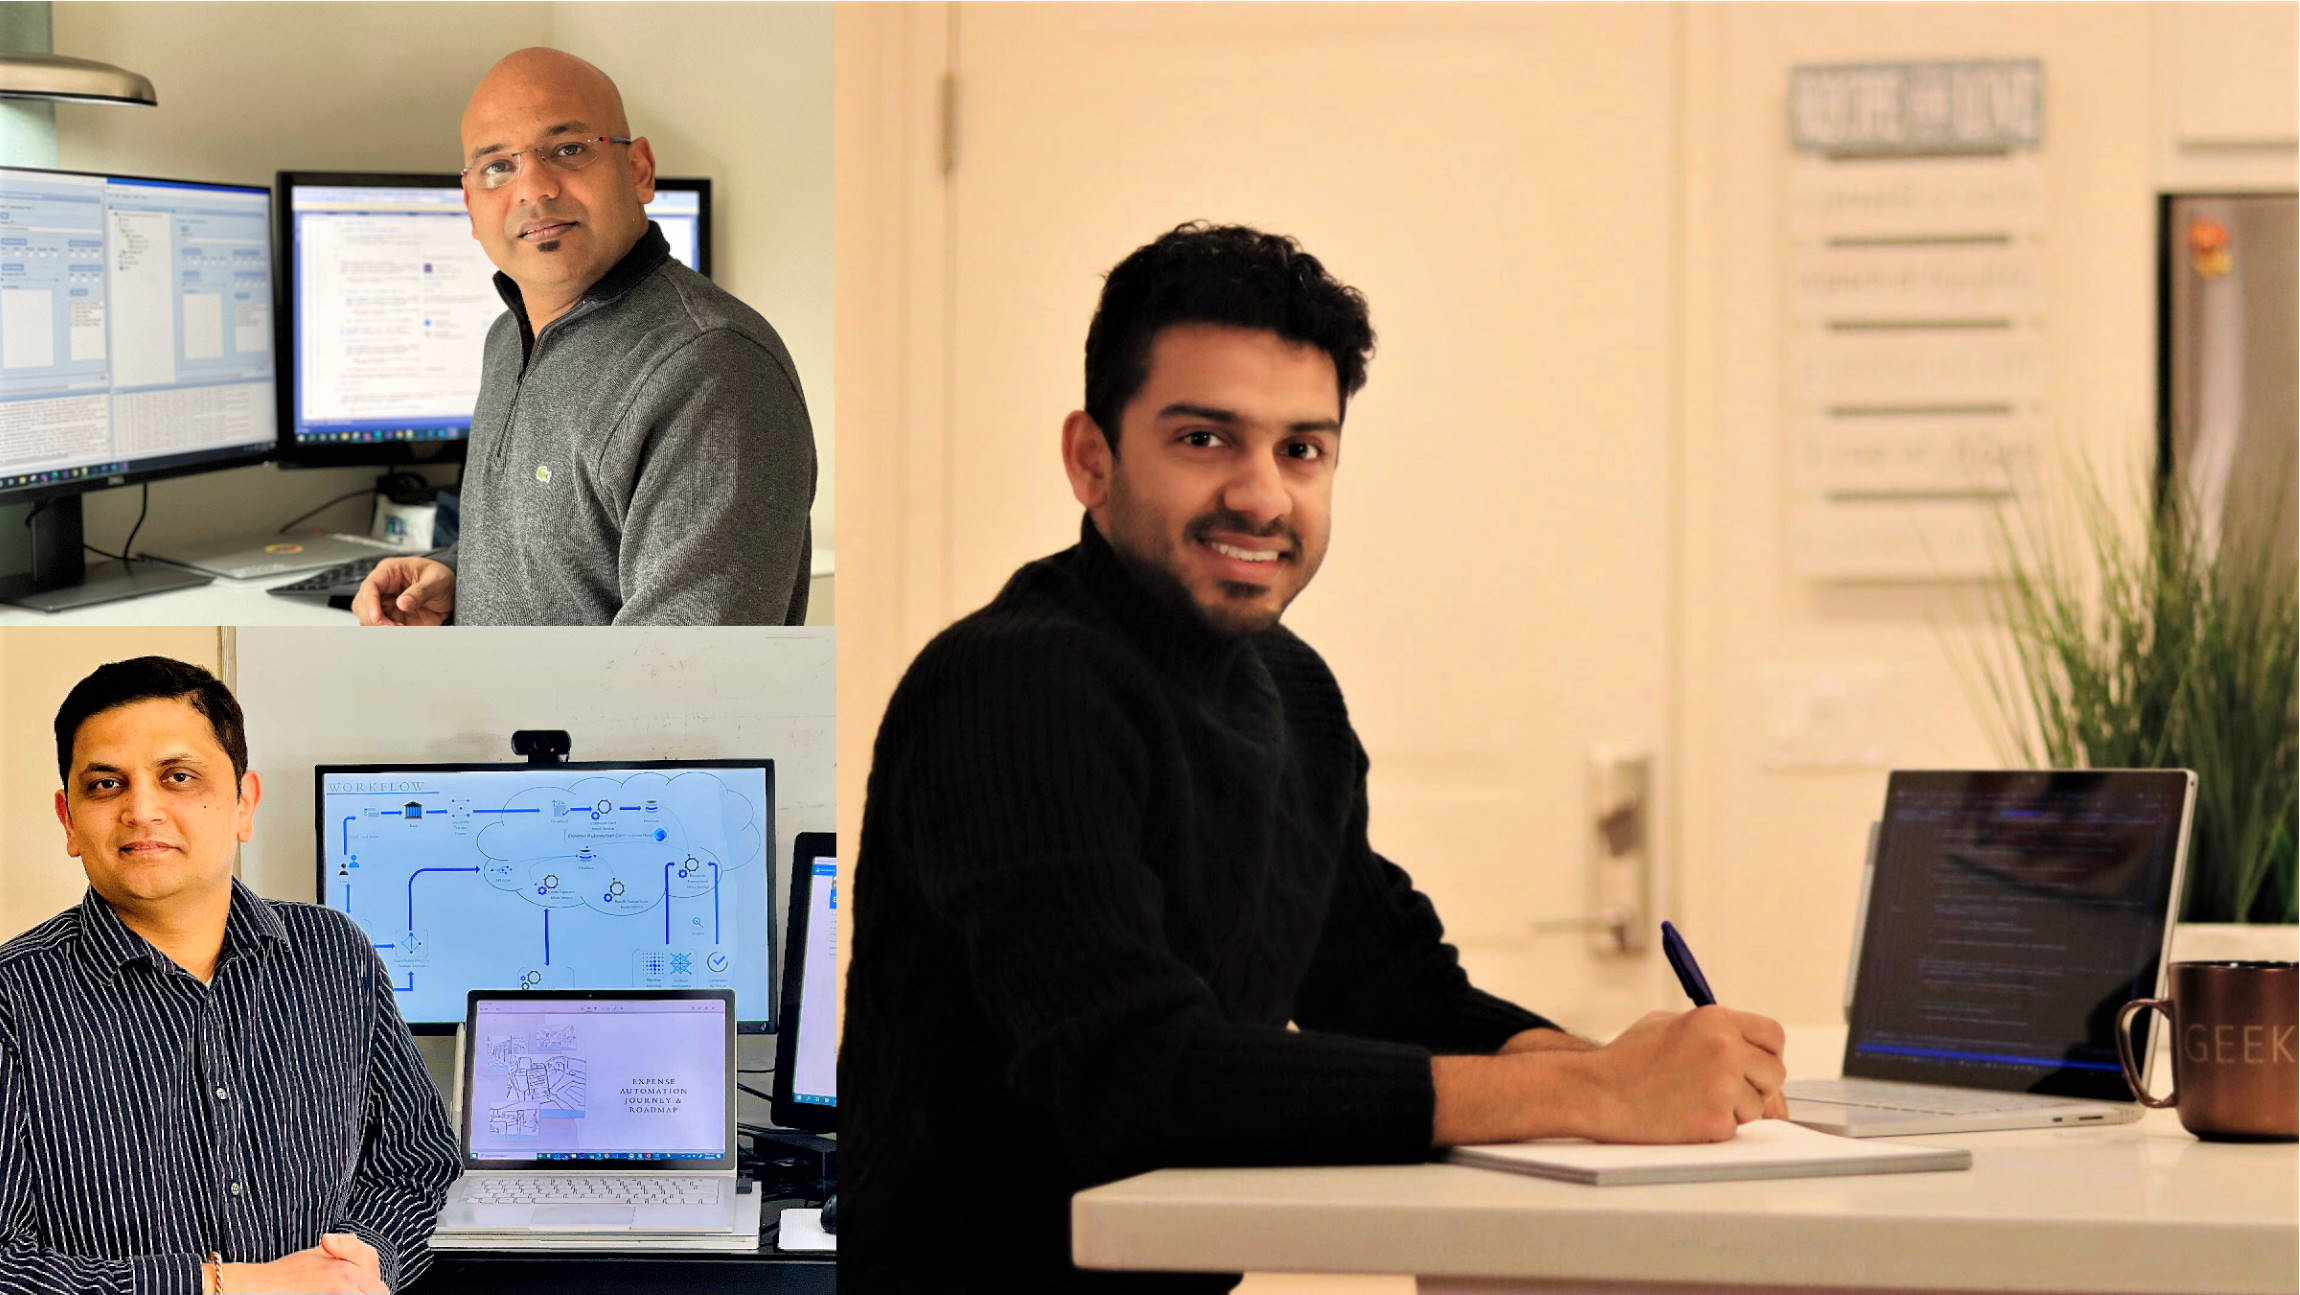 Jain, Rath, and Deshpande are shown working from their home offices in a collage image arrangement.